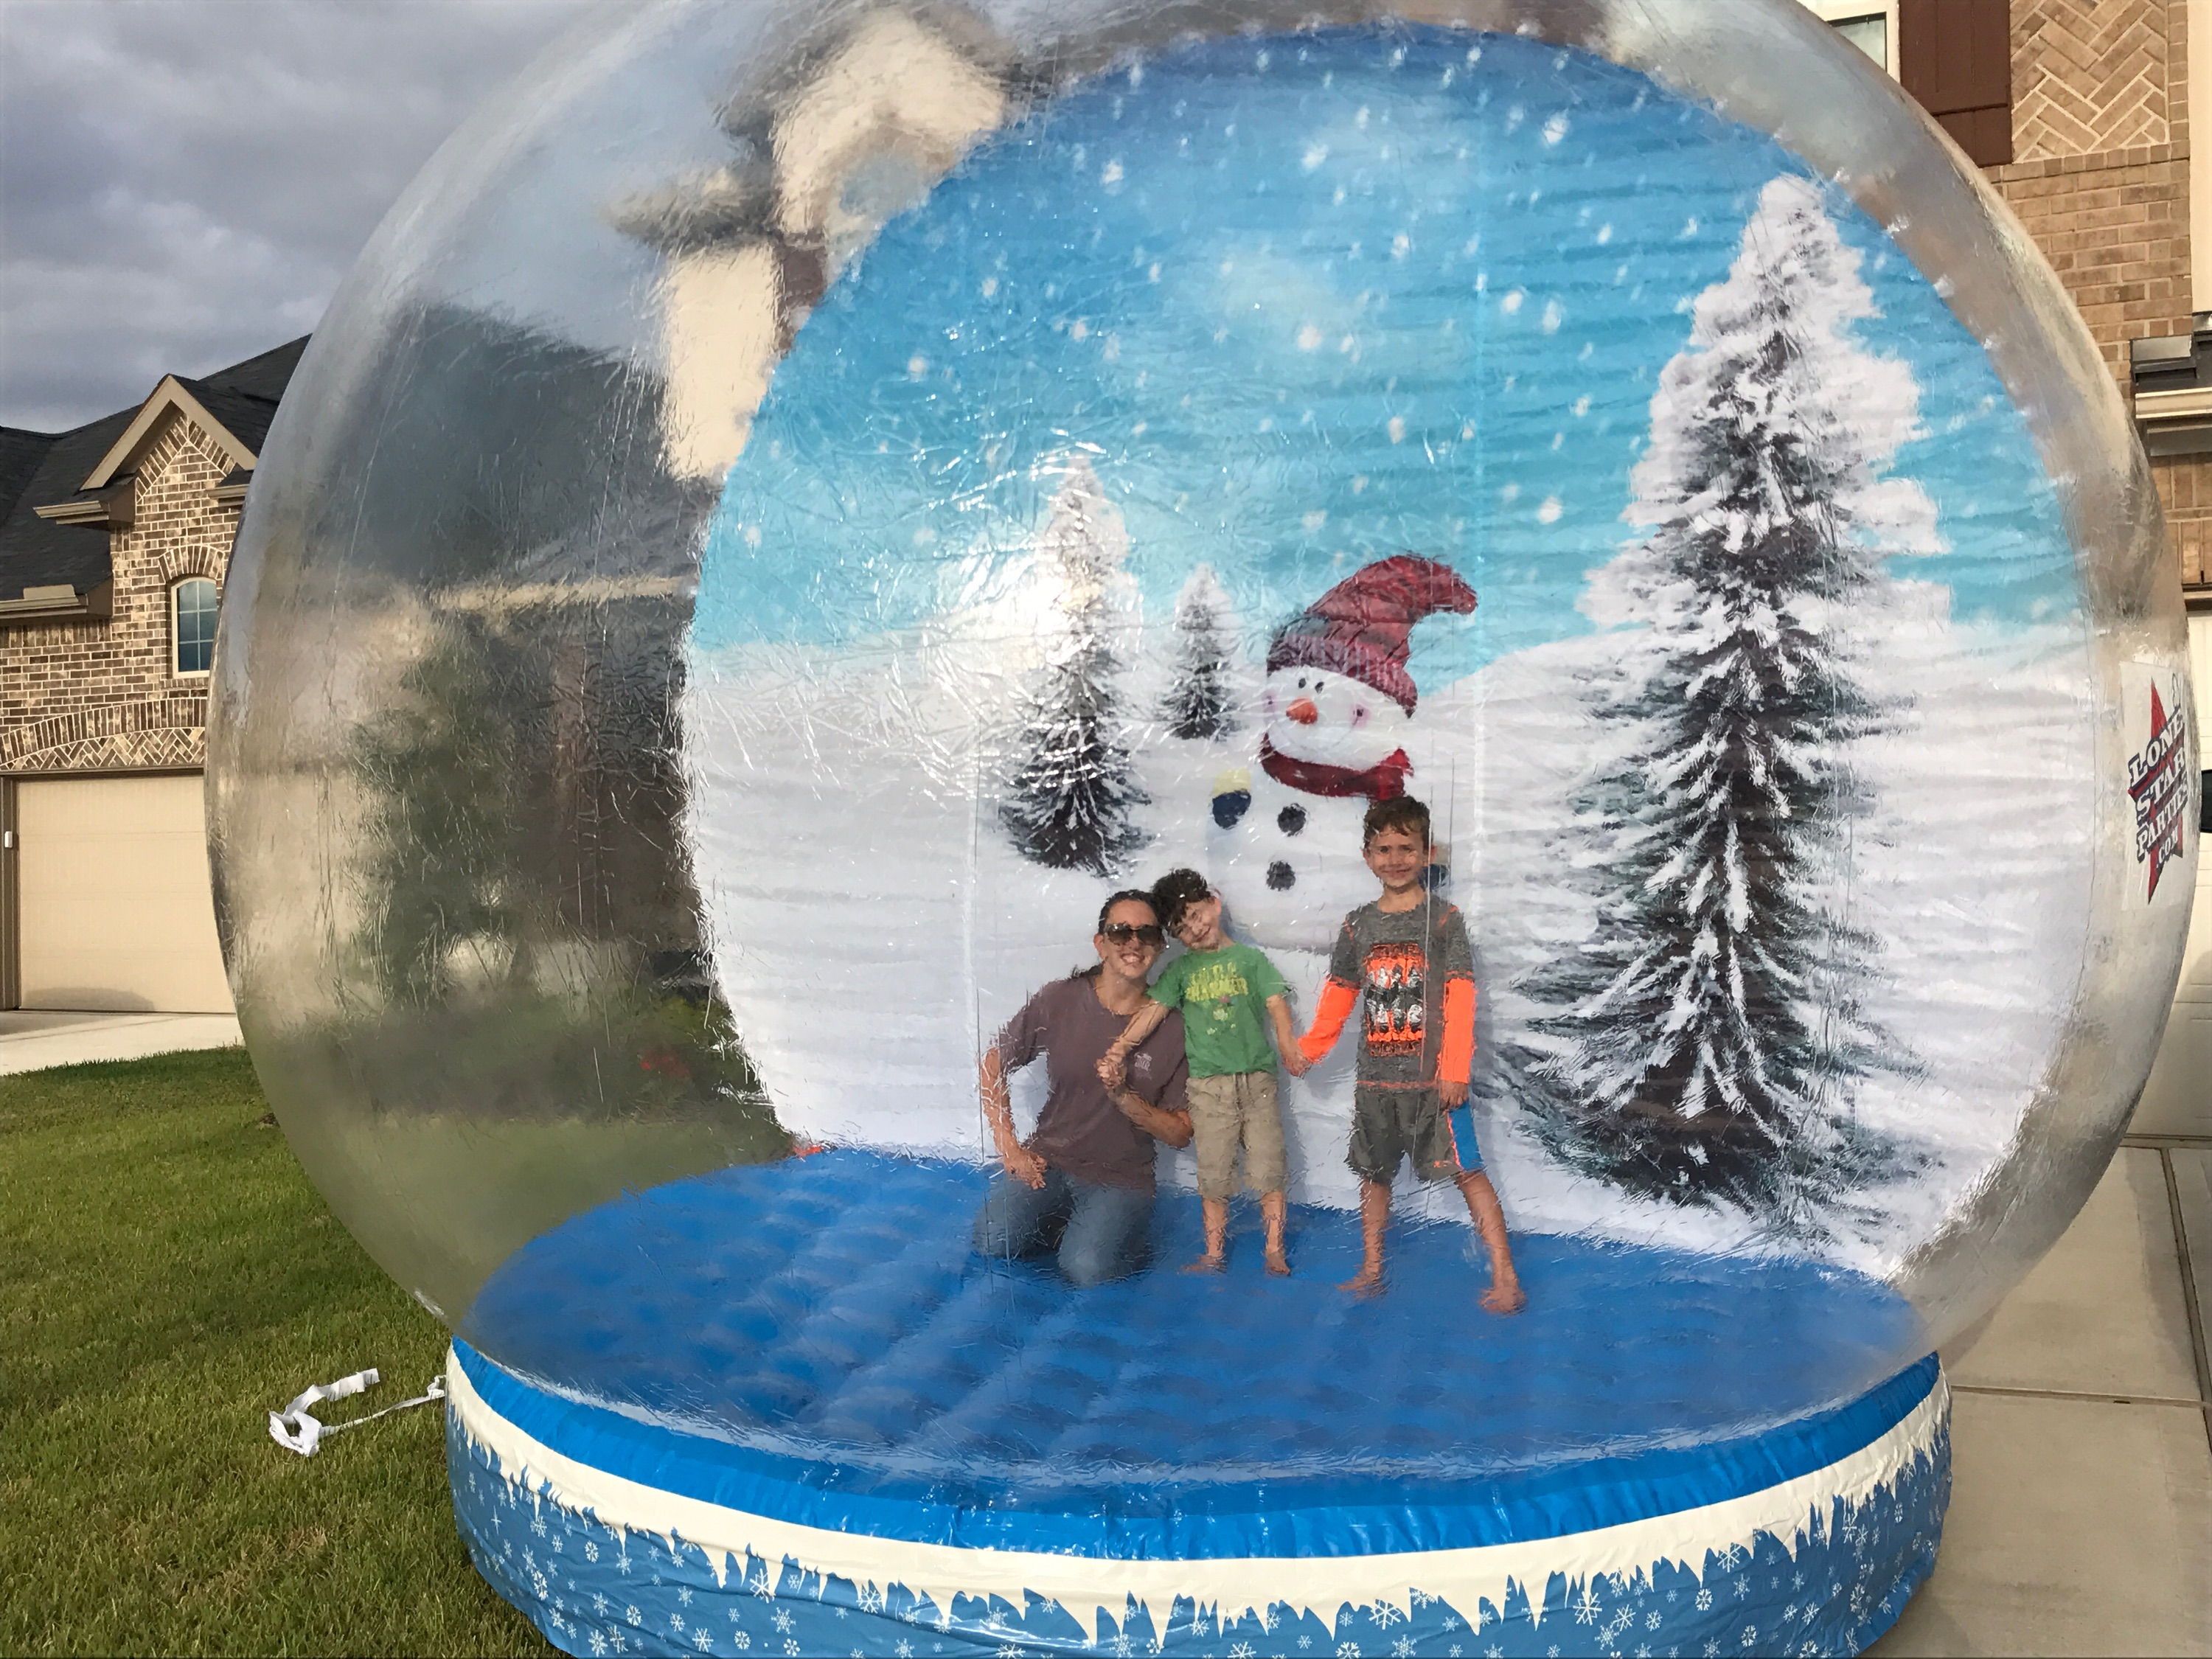 2019 New Inflatable Snow Globe Customized Size 2M/3M/4M Dia Inflatable Globe For Christmas Decoration Transparent Snow Globe